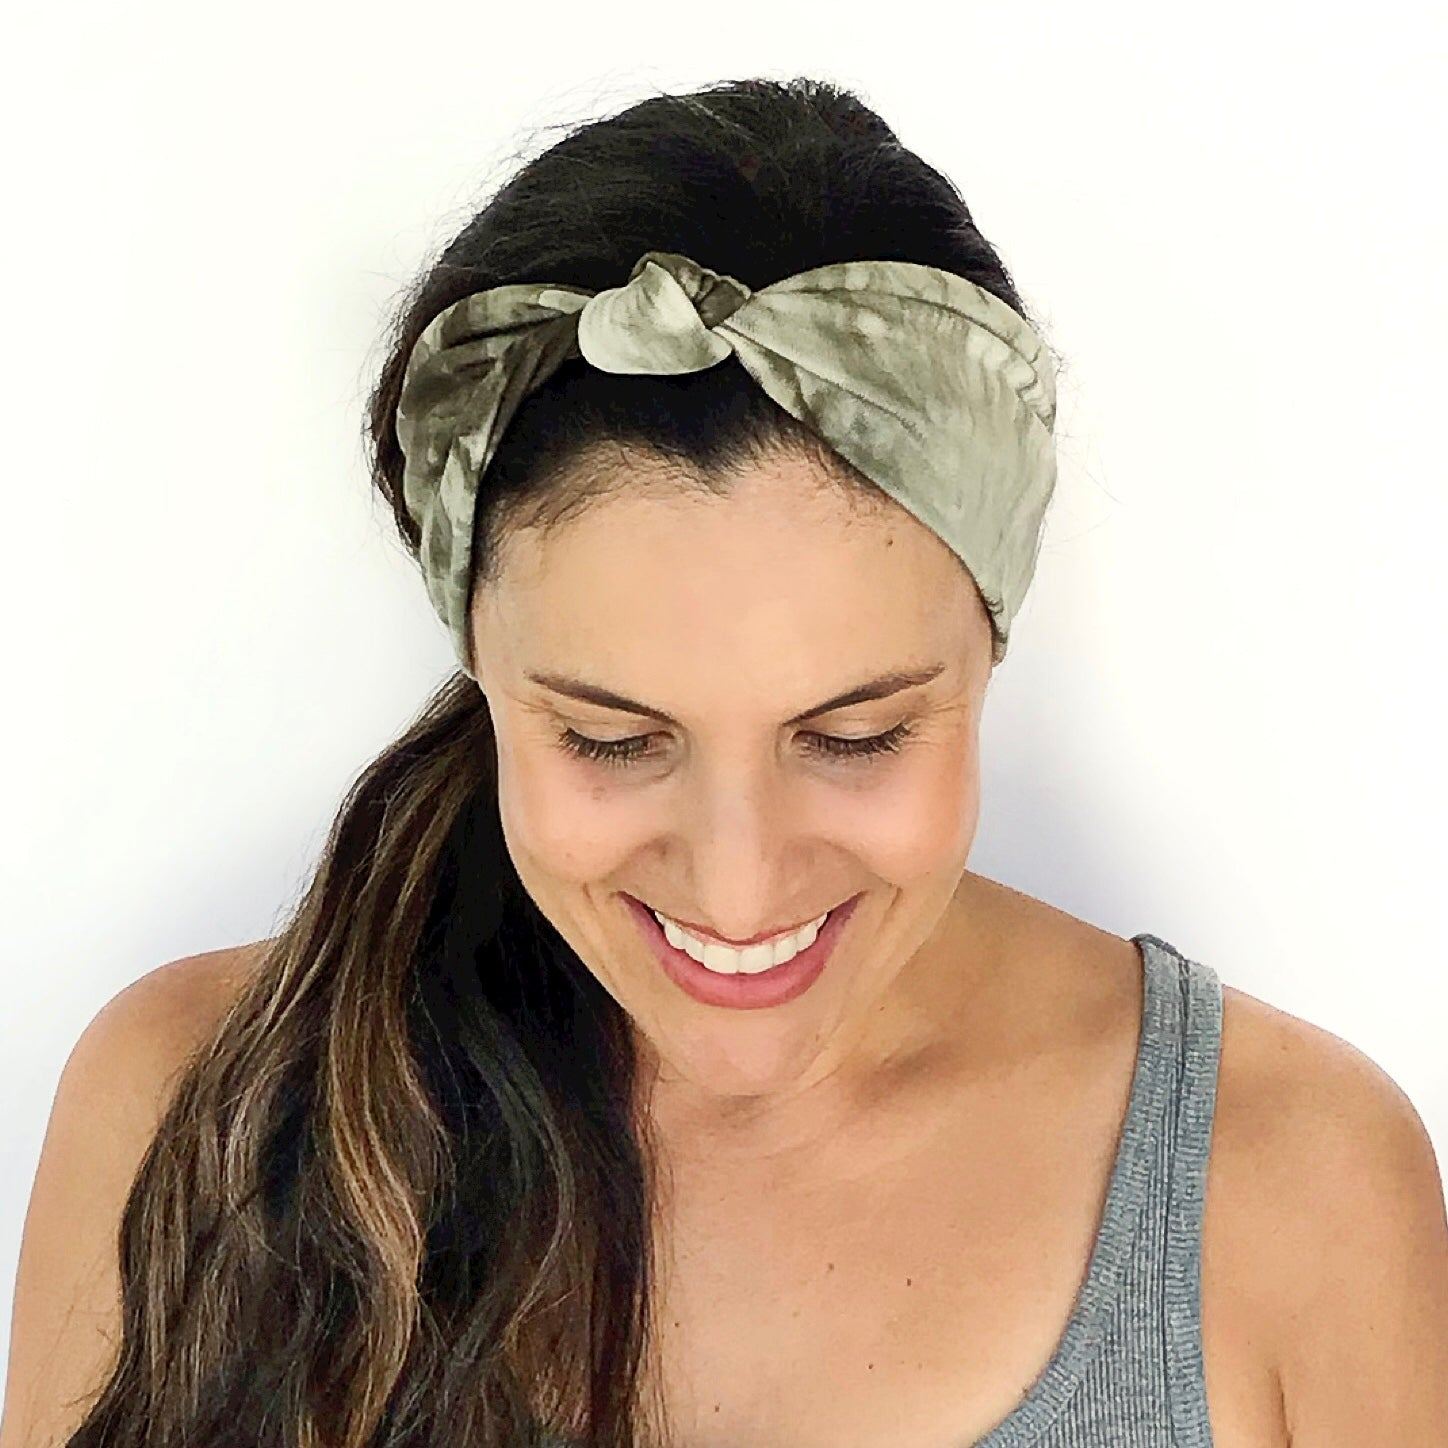 Casablanca Knotted Headband